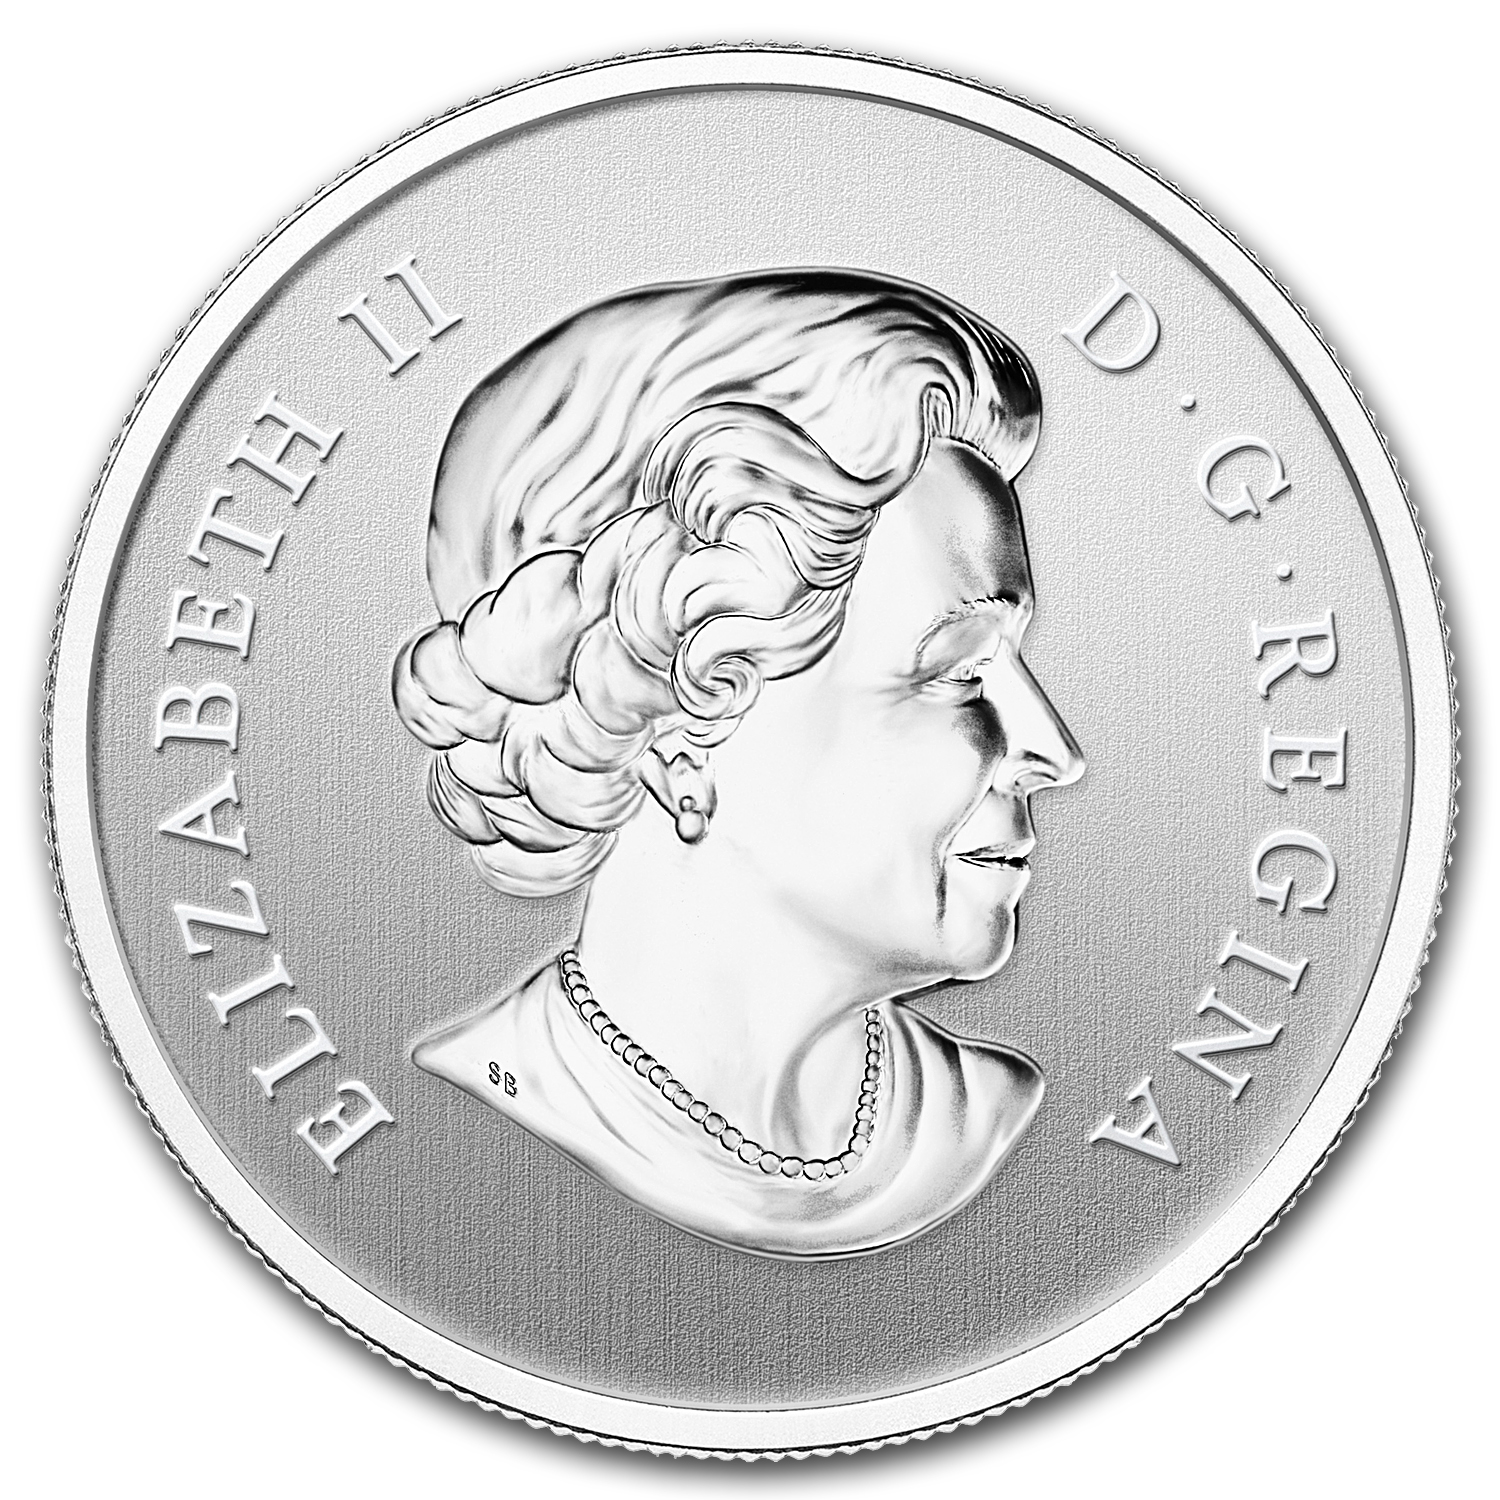 2013 1/2 oz Silver Canadian $10 - Year of the Snake (Style 2)